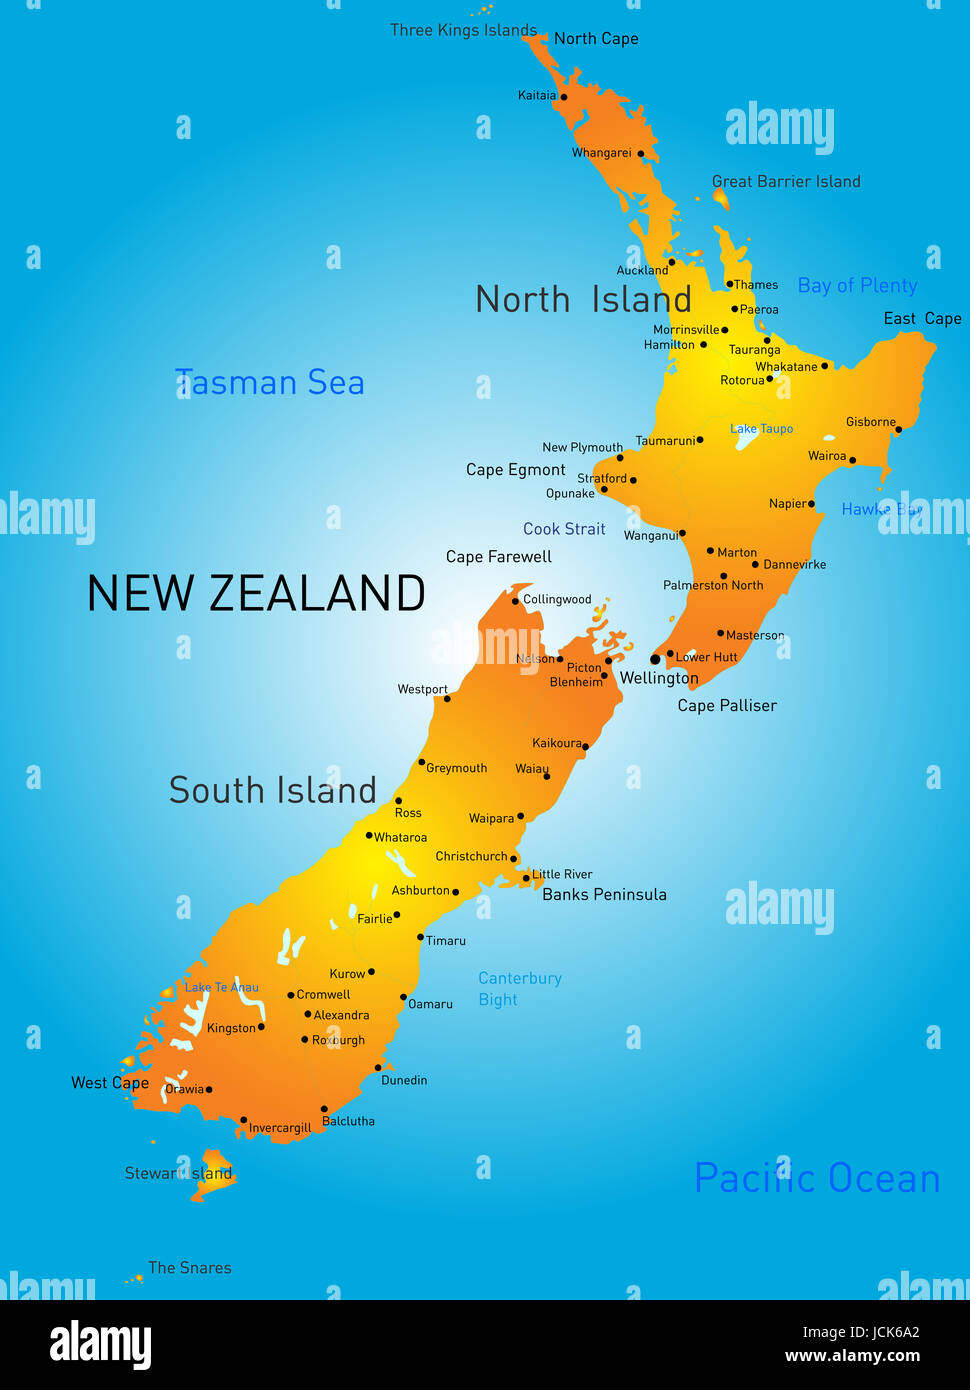 Hastings New Zealand Map.Hastings Town Map Stock Photos Hastings Town Map Stock Images Alamy